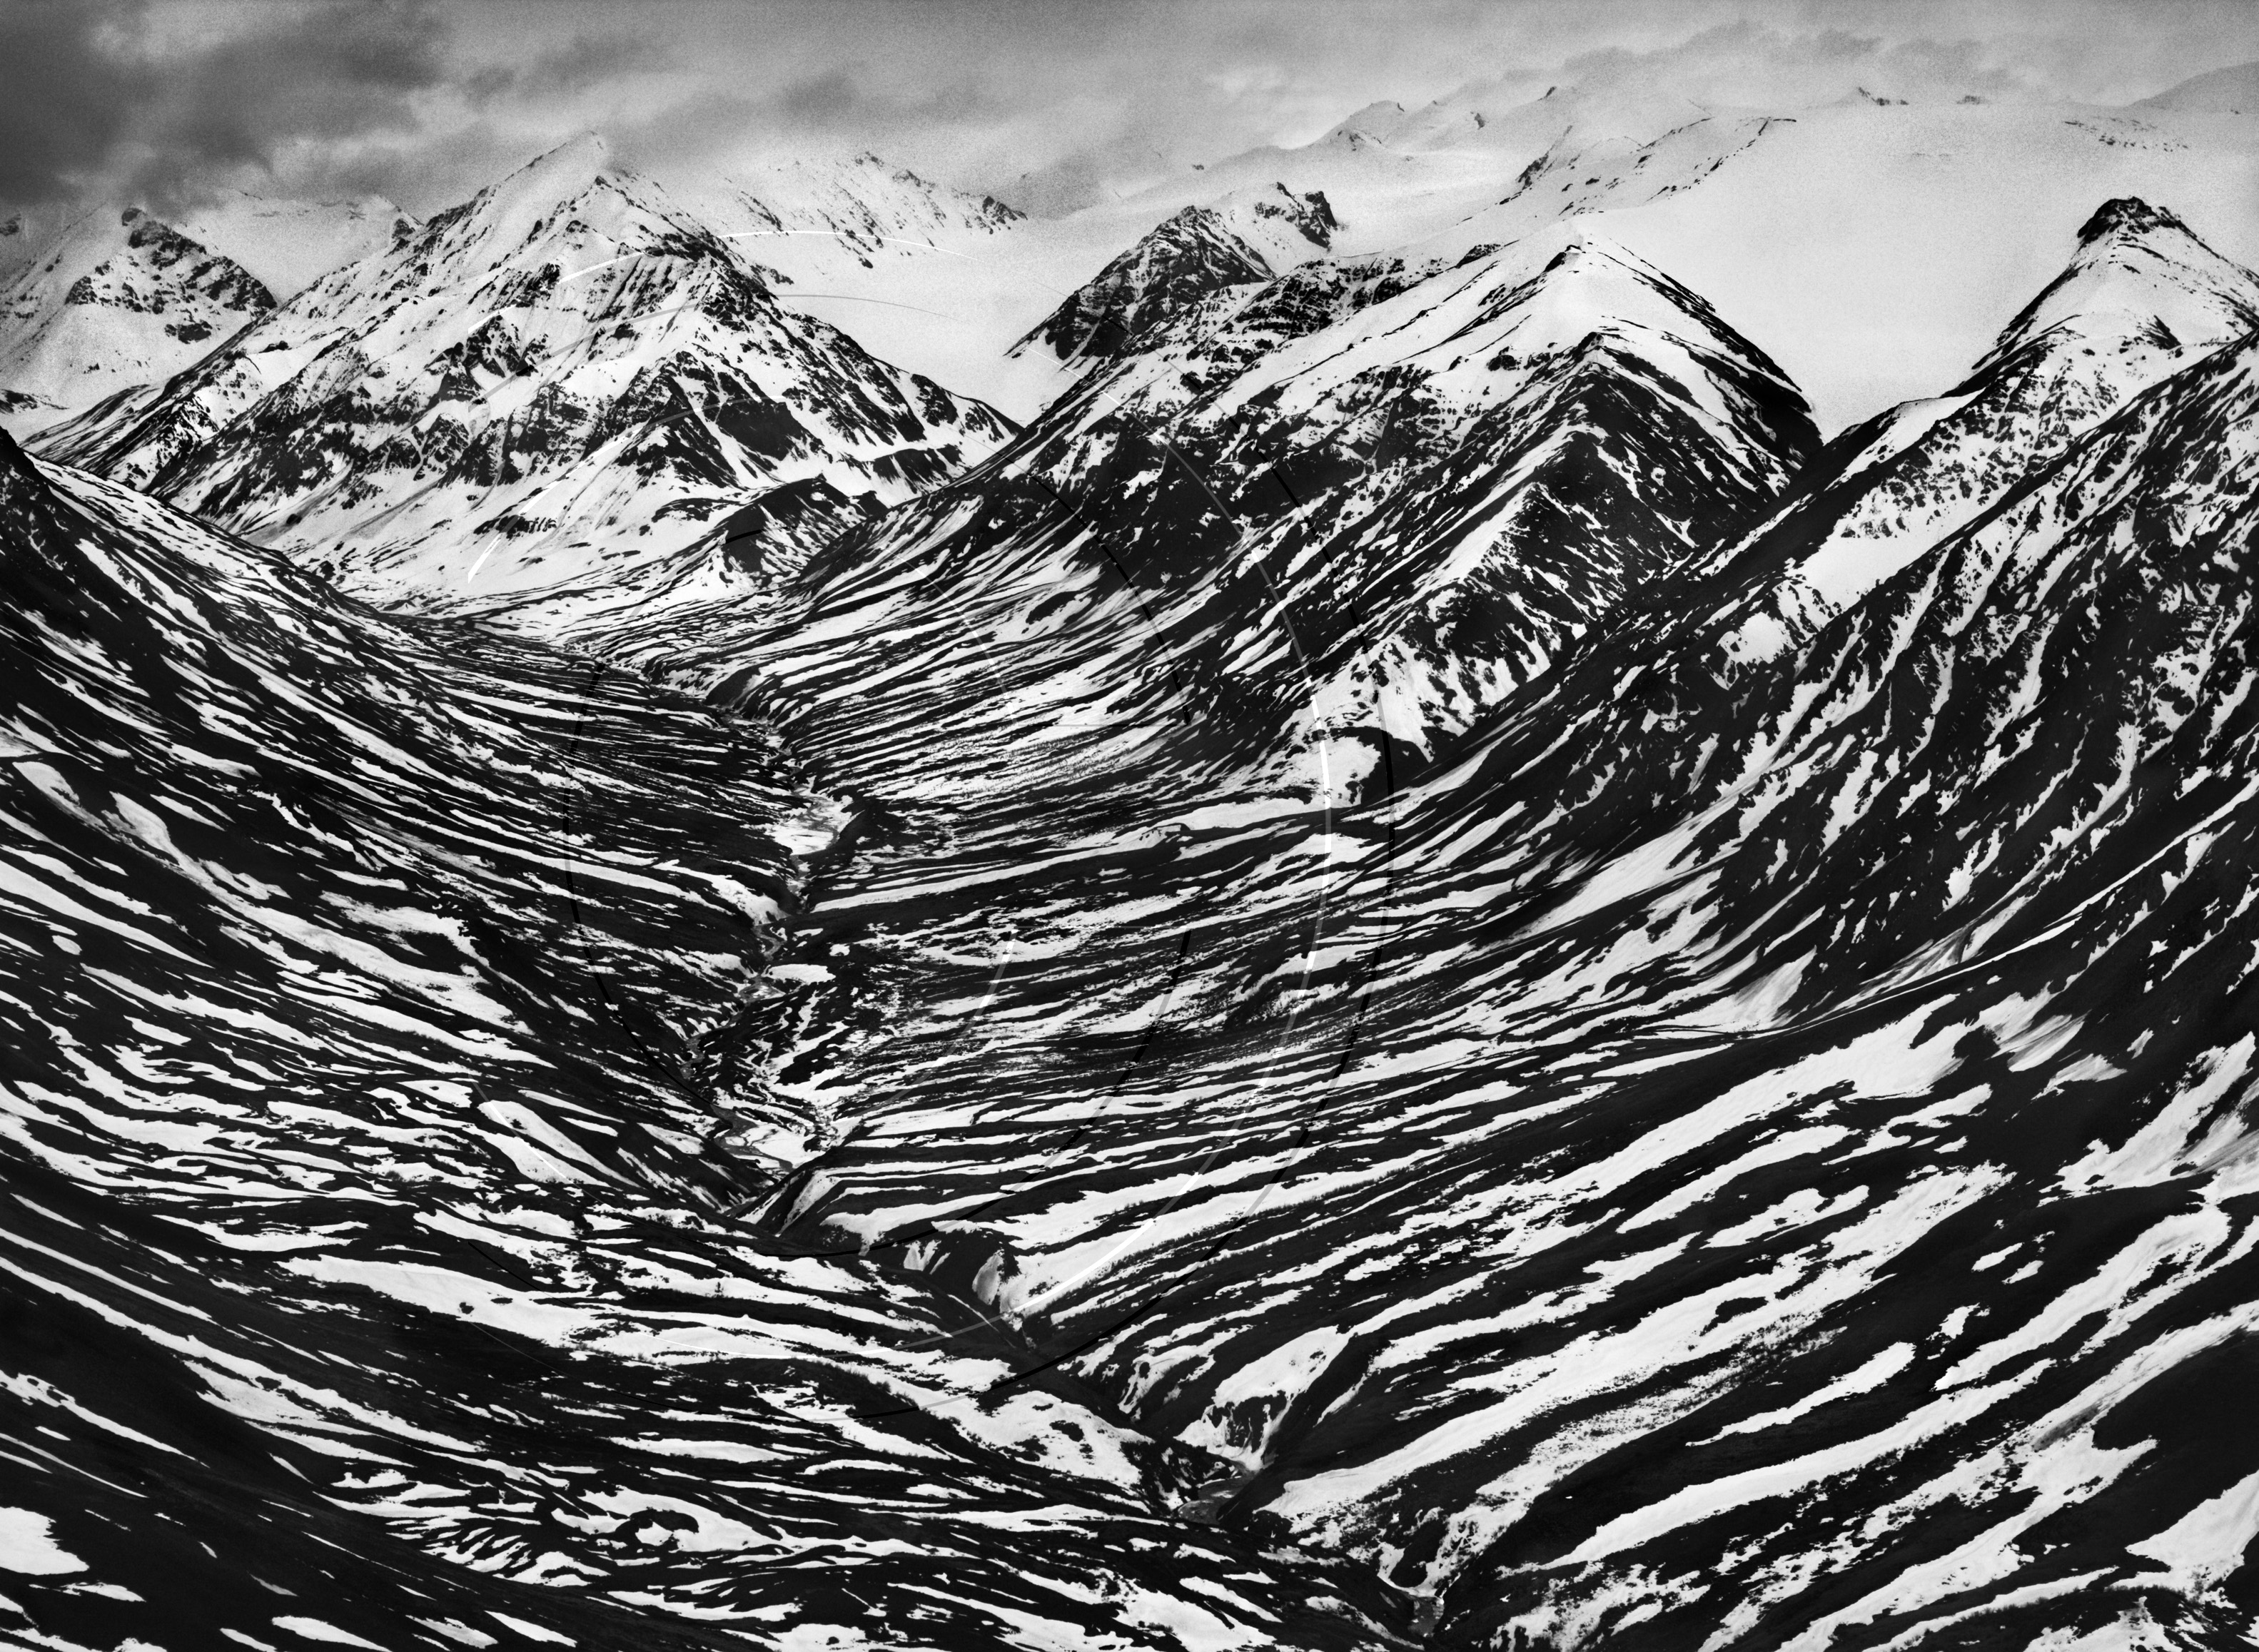 Salgado. Bighorn-creek-in-the-western-part-of-the-kluane-national-park-canada-2011-copy-sebastiao-salgado-amazonas-images-contact